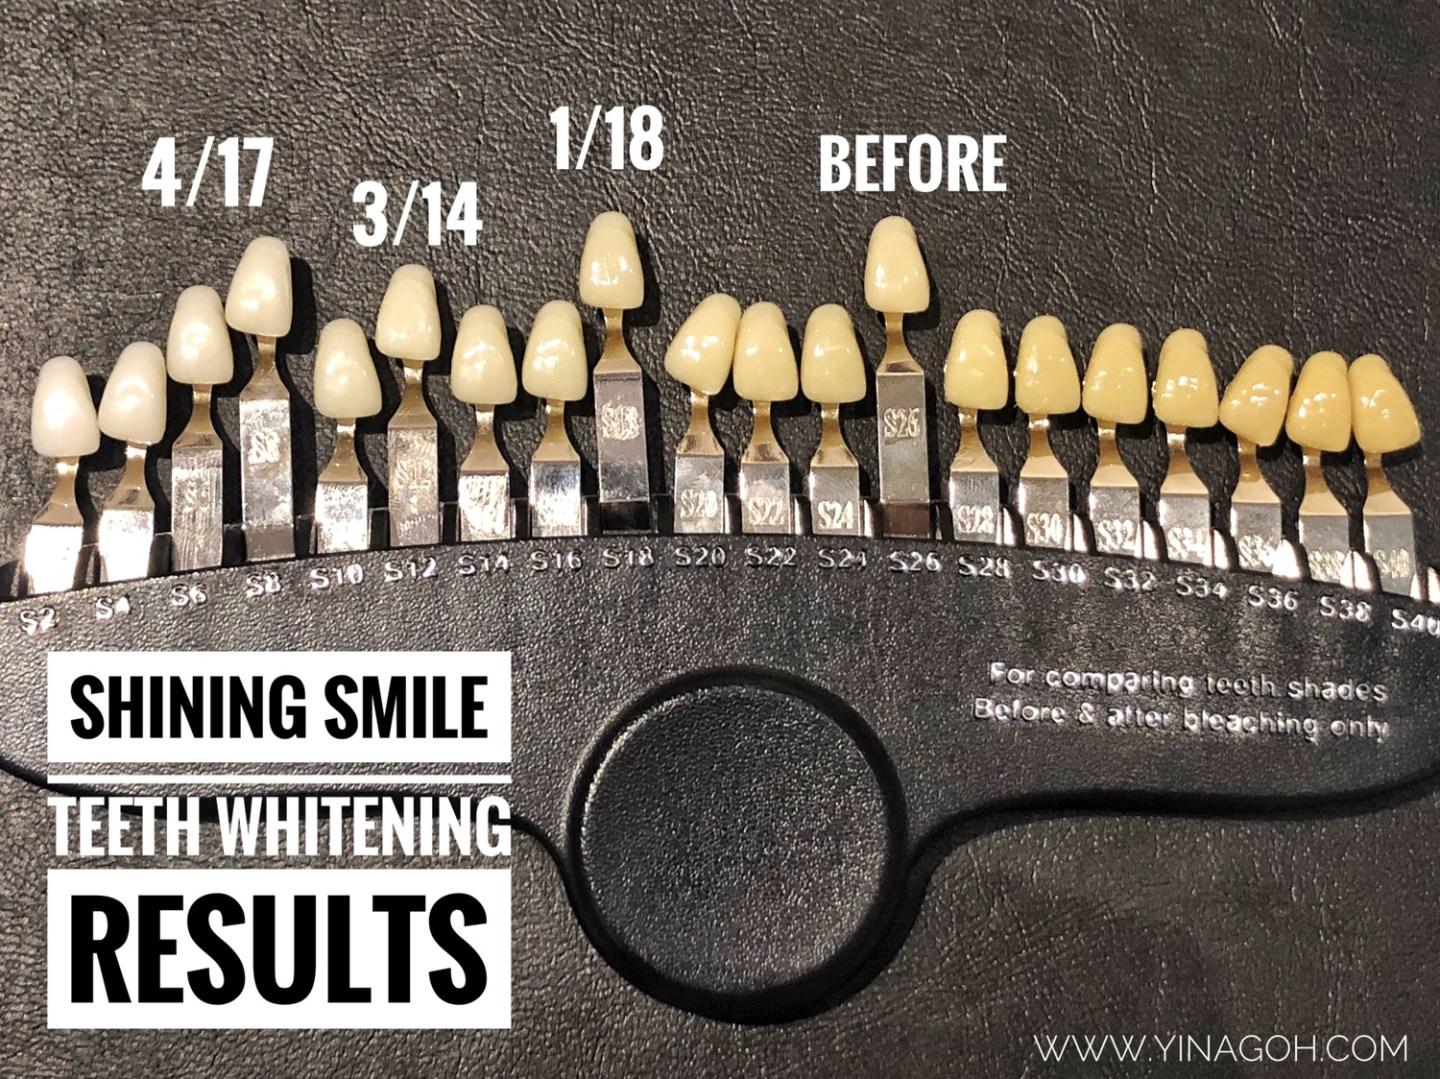 Shining Smile Singapore teeth whitening results